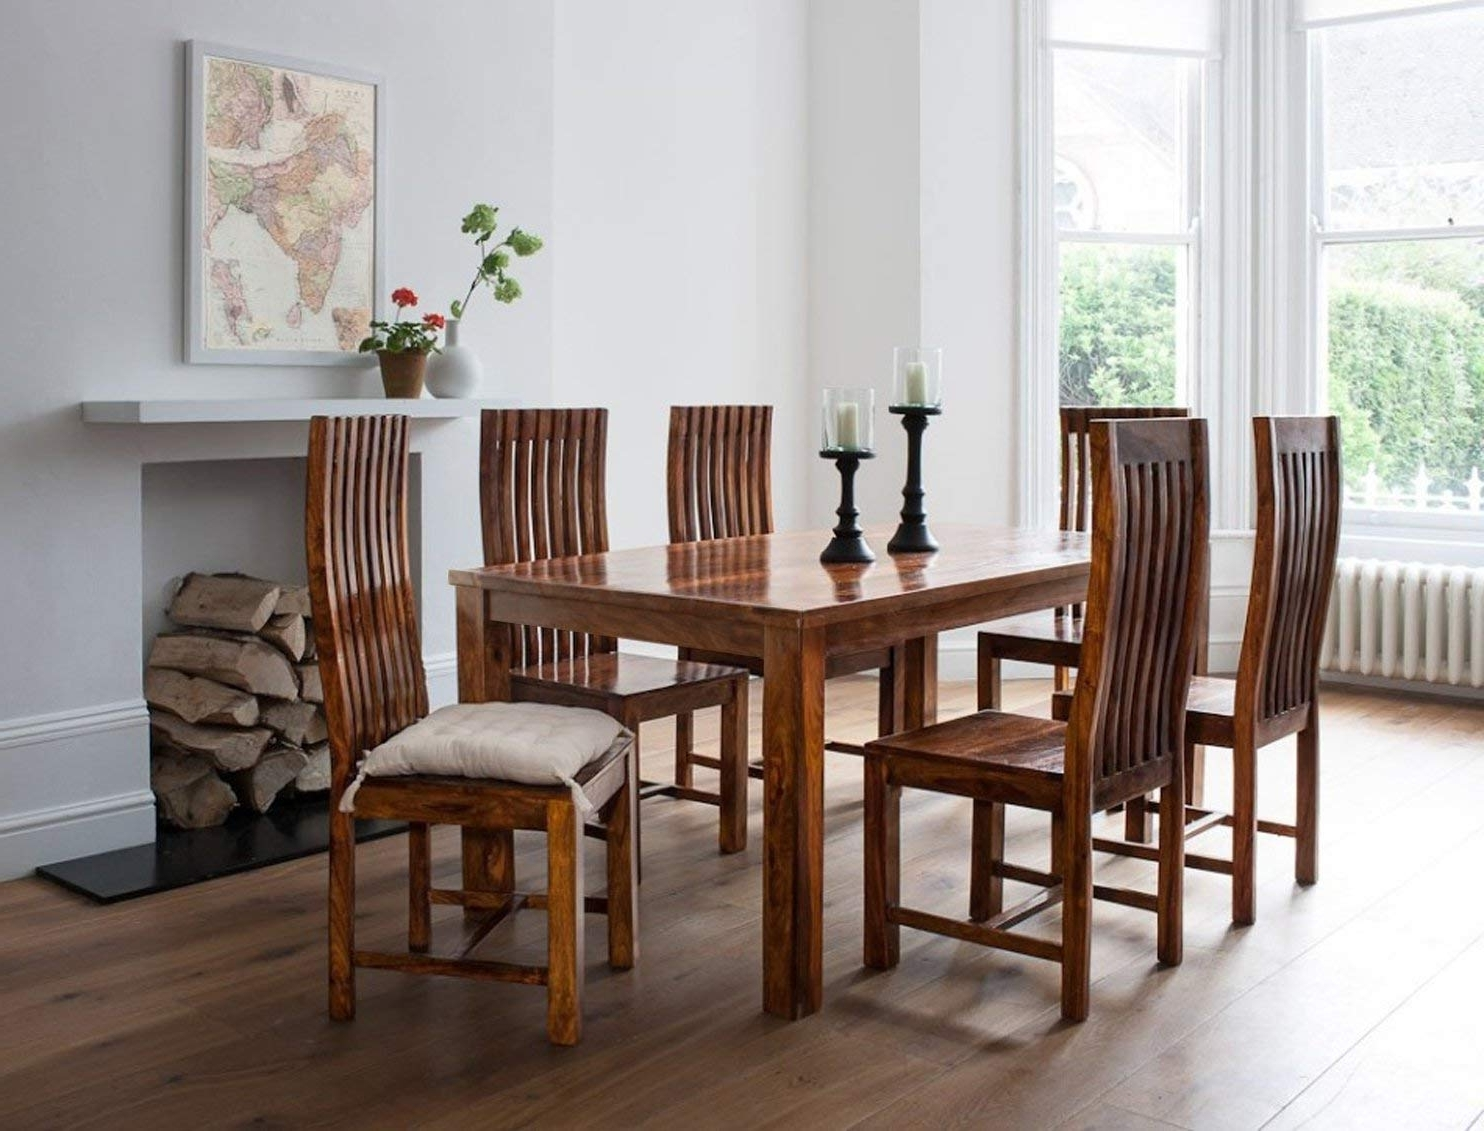 Lifeestyle Handcrafted Sheesham Wood 6 Seater Dining Set (Honey In Latest Kitchen Dining Tables And Chairs (View 16 of 25)